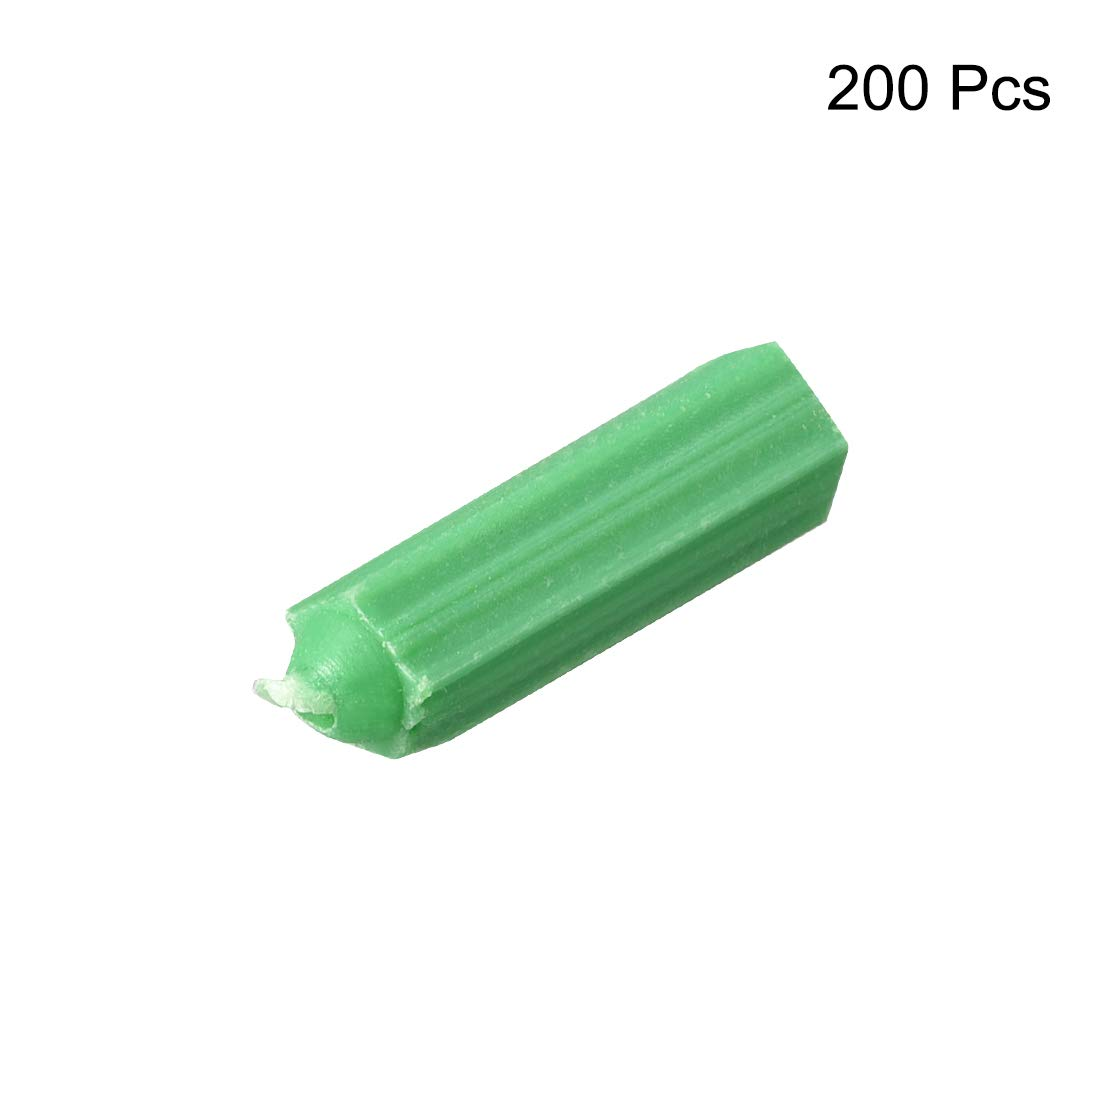 uxcell 8X28mm Household Masonry Plastic Screws Anchor Expansion Pipe Fixings Wall Connector Green 200pcs